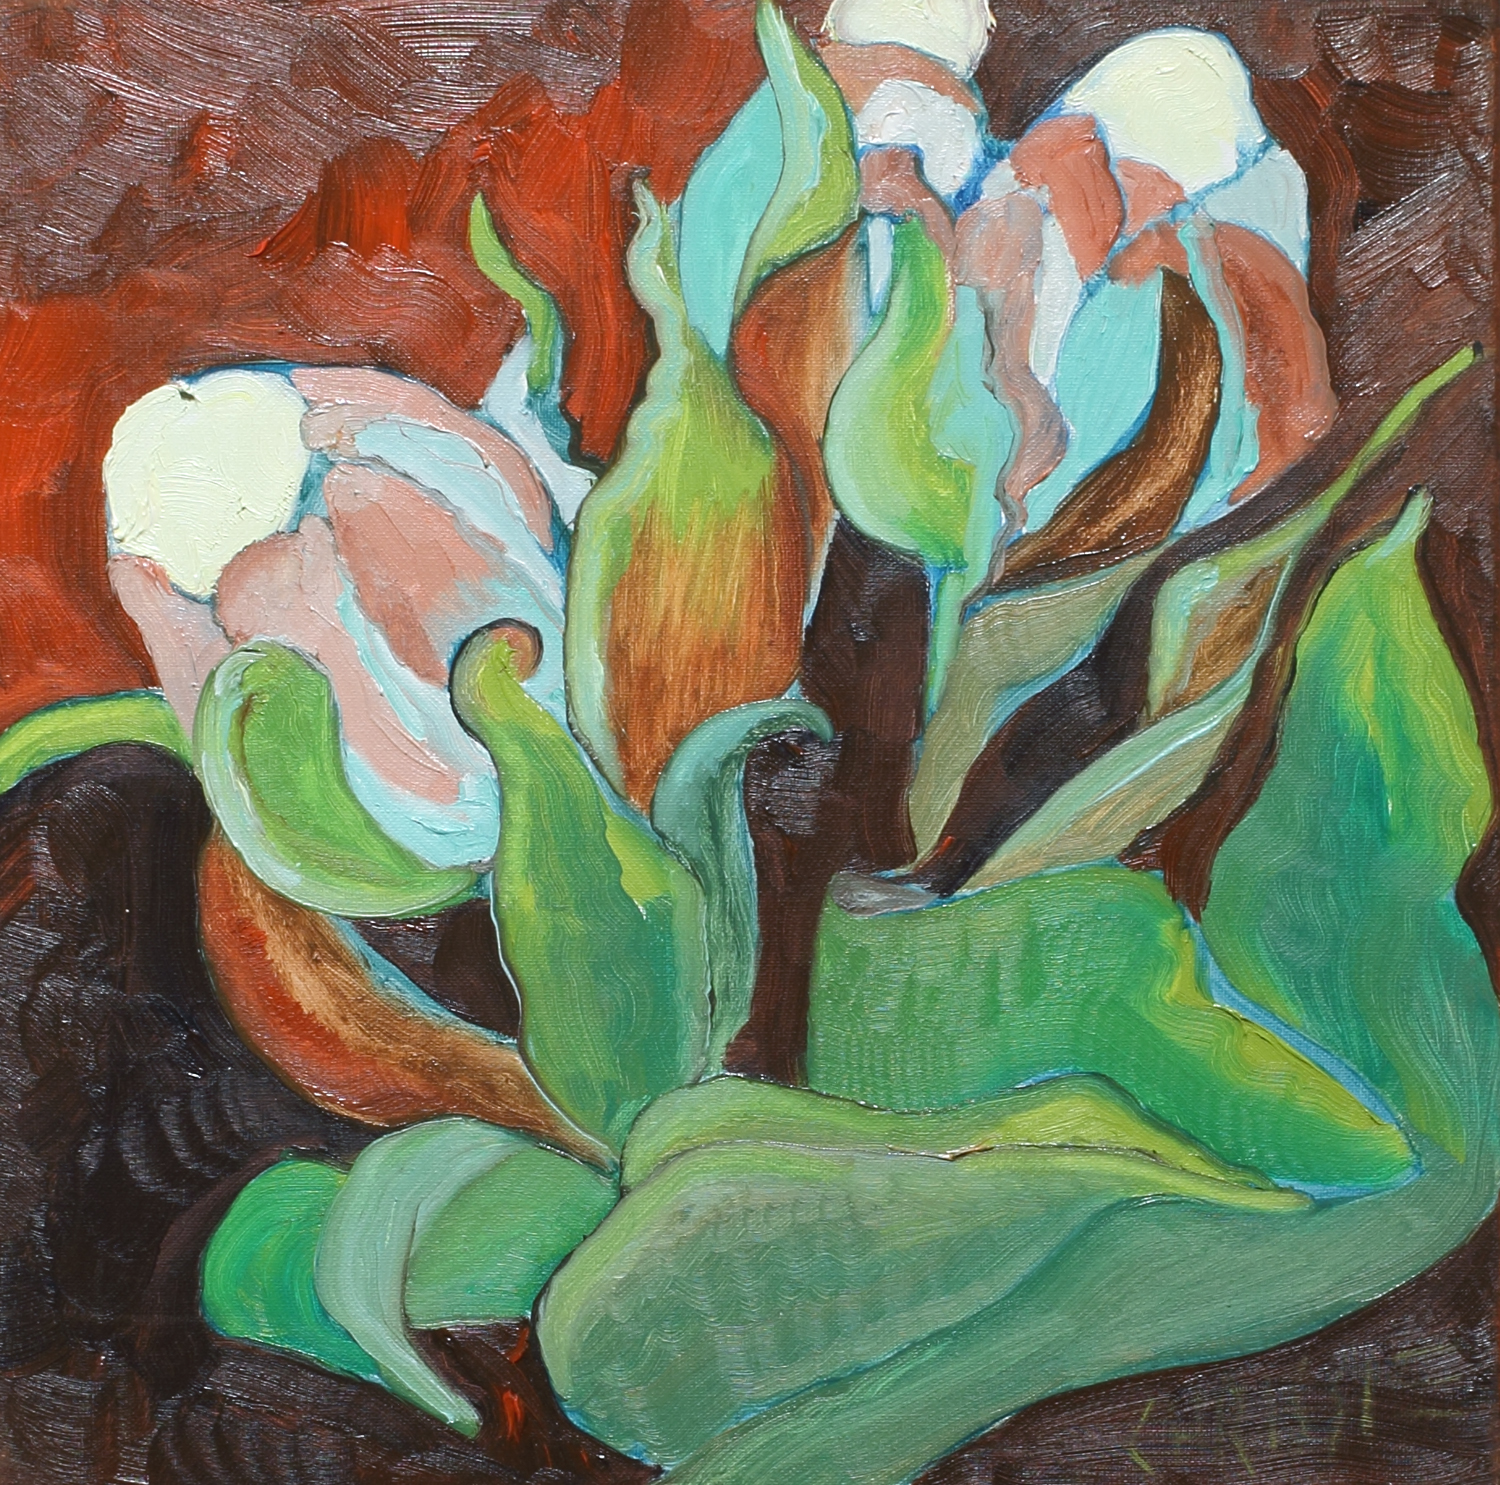 Chrissie Hynde: Thursday Clare Flowers I, oil on canvas,15.75 x 15.75 in., 5.19.2016